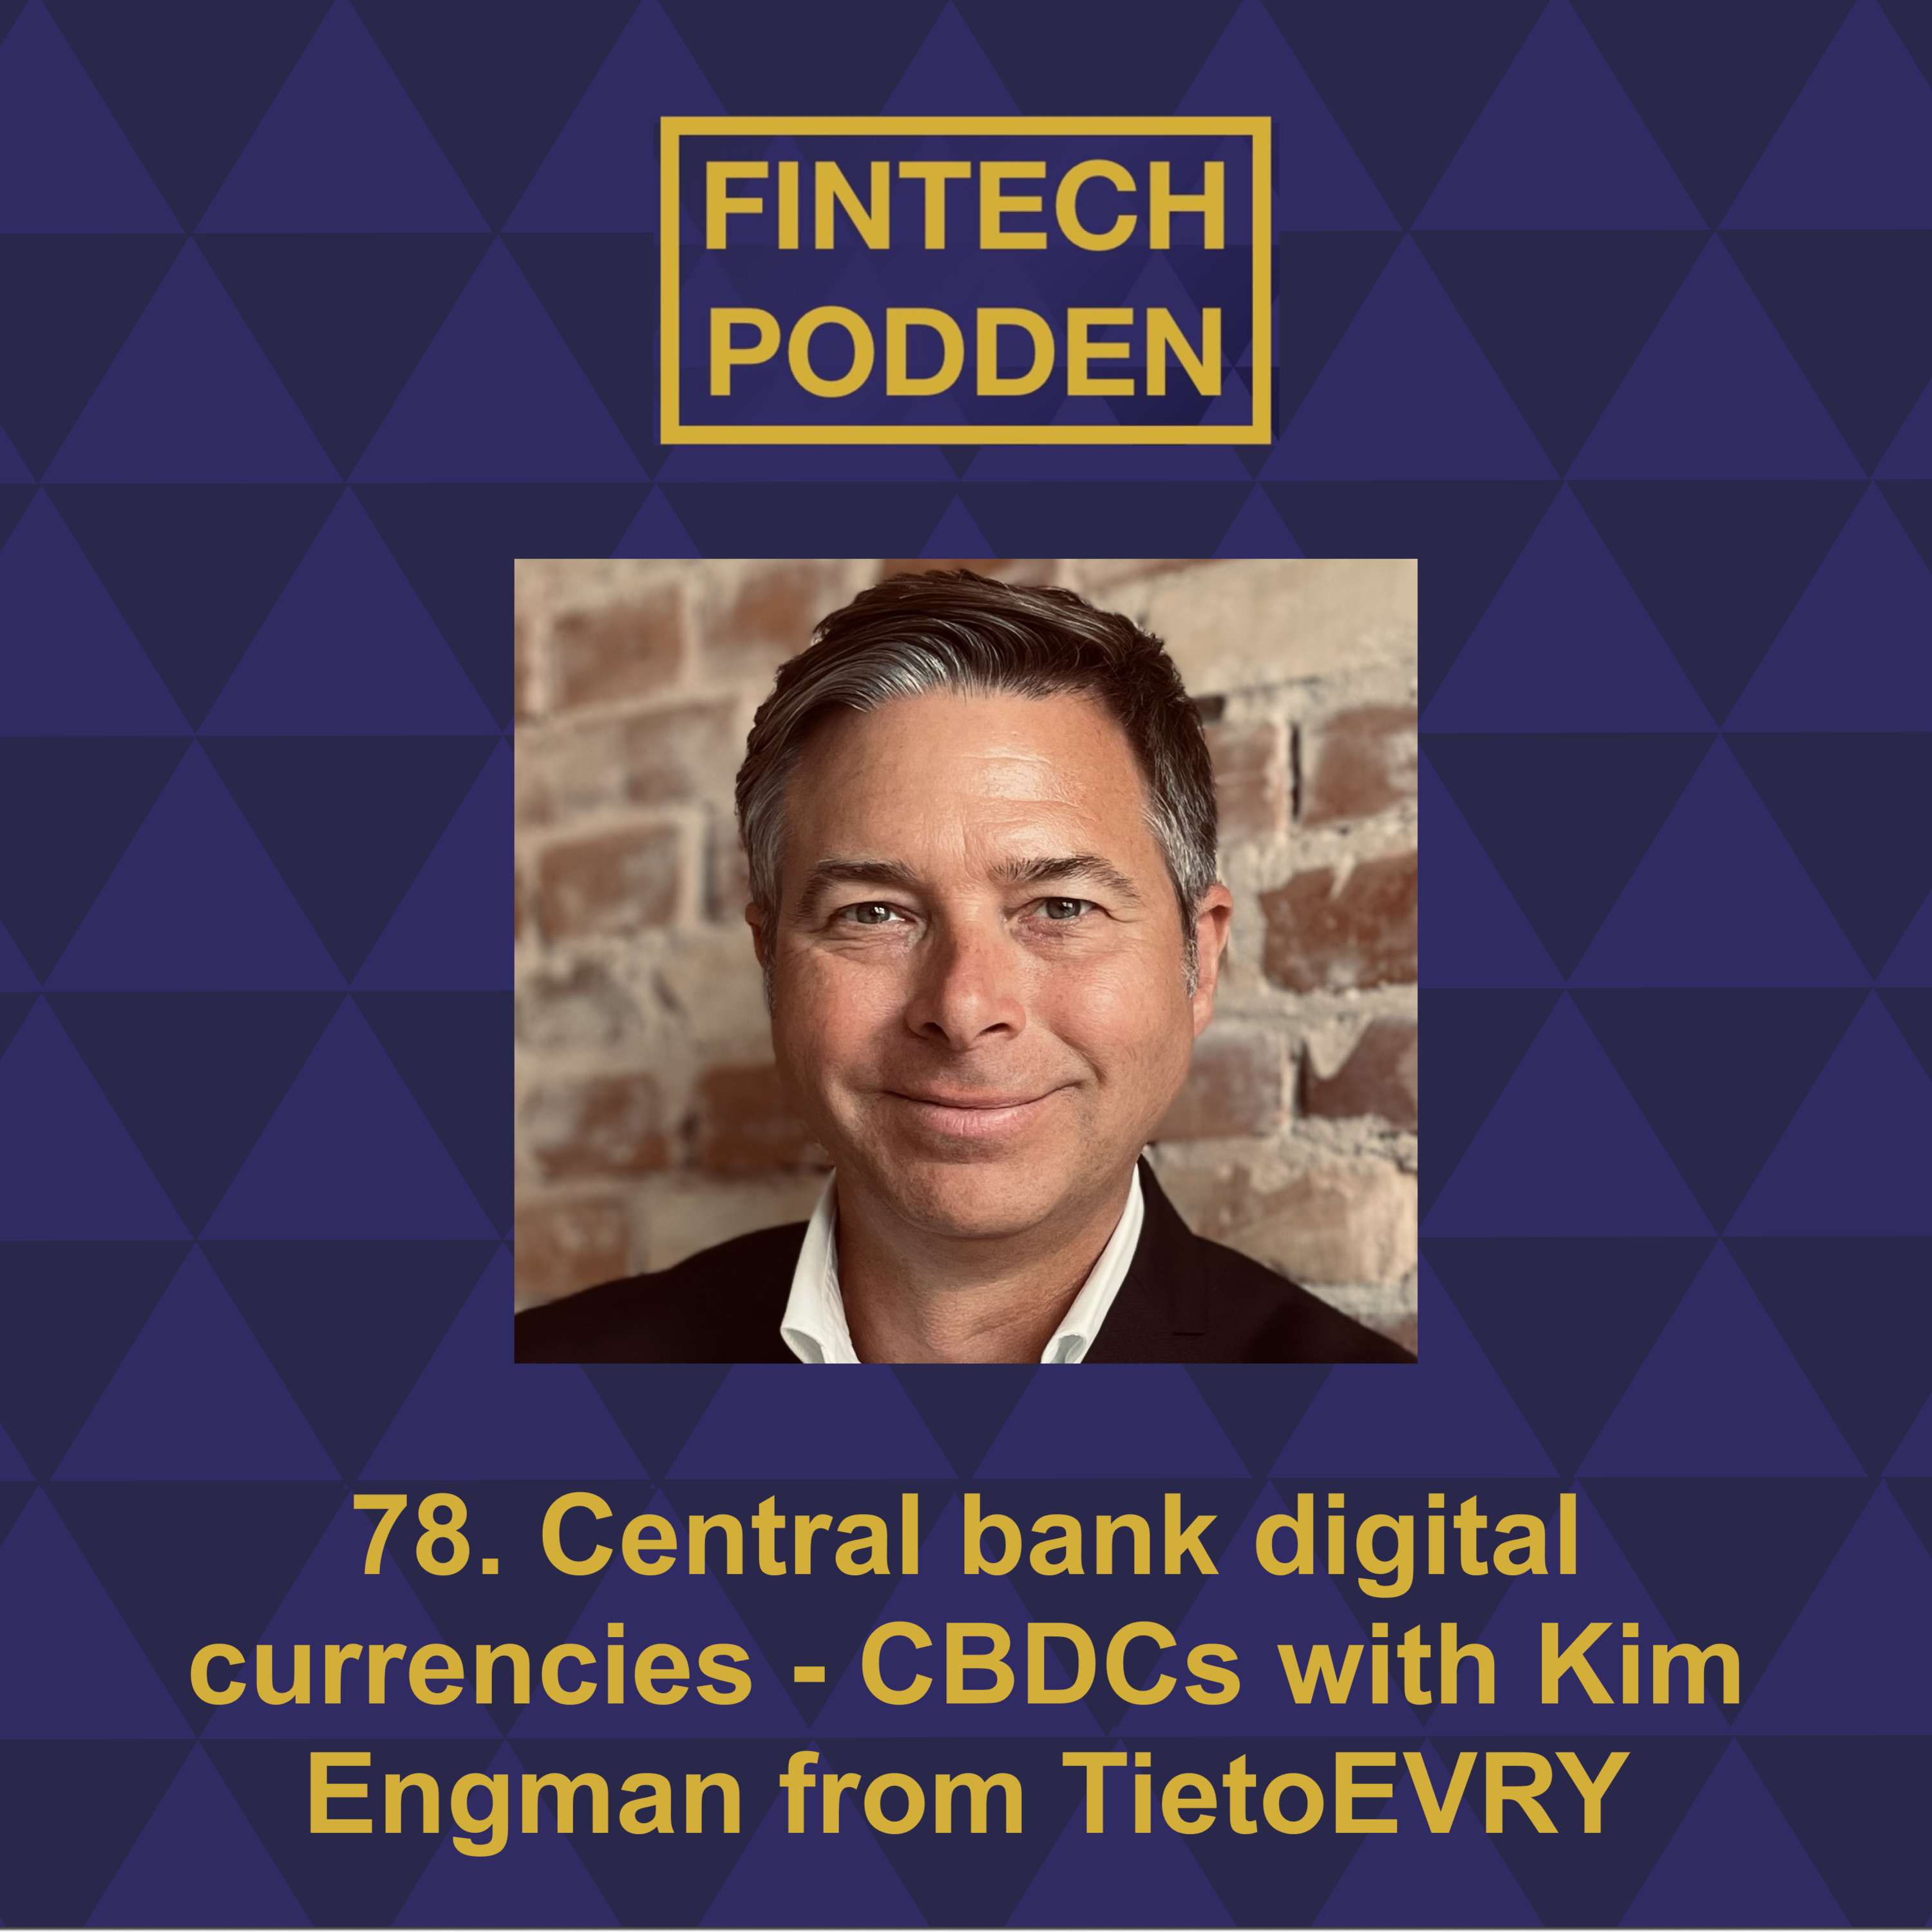 78. Central bank digital currencies - CBDCs with Kim Engman from TietoEVRY